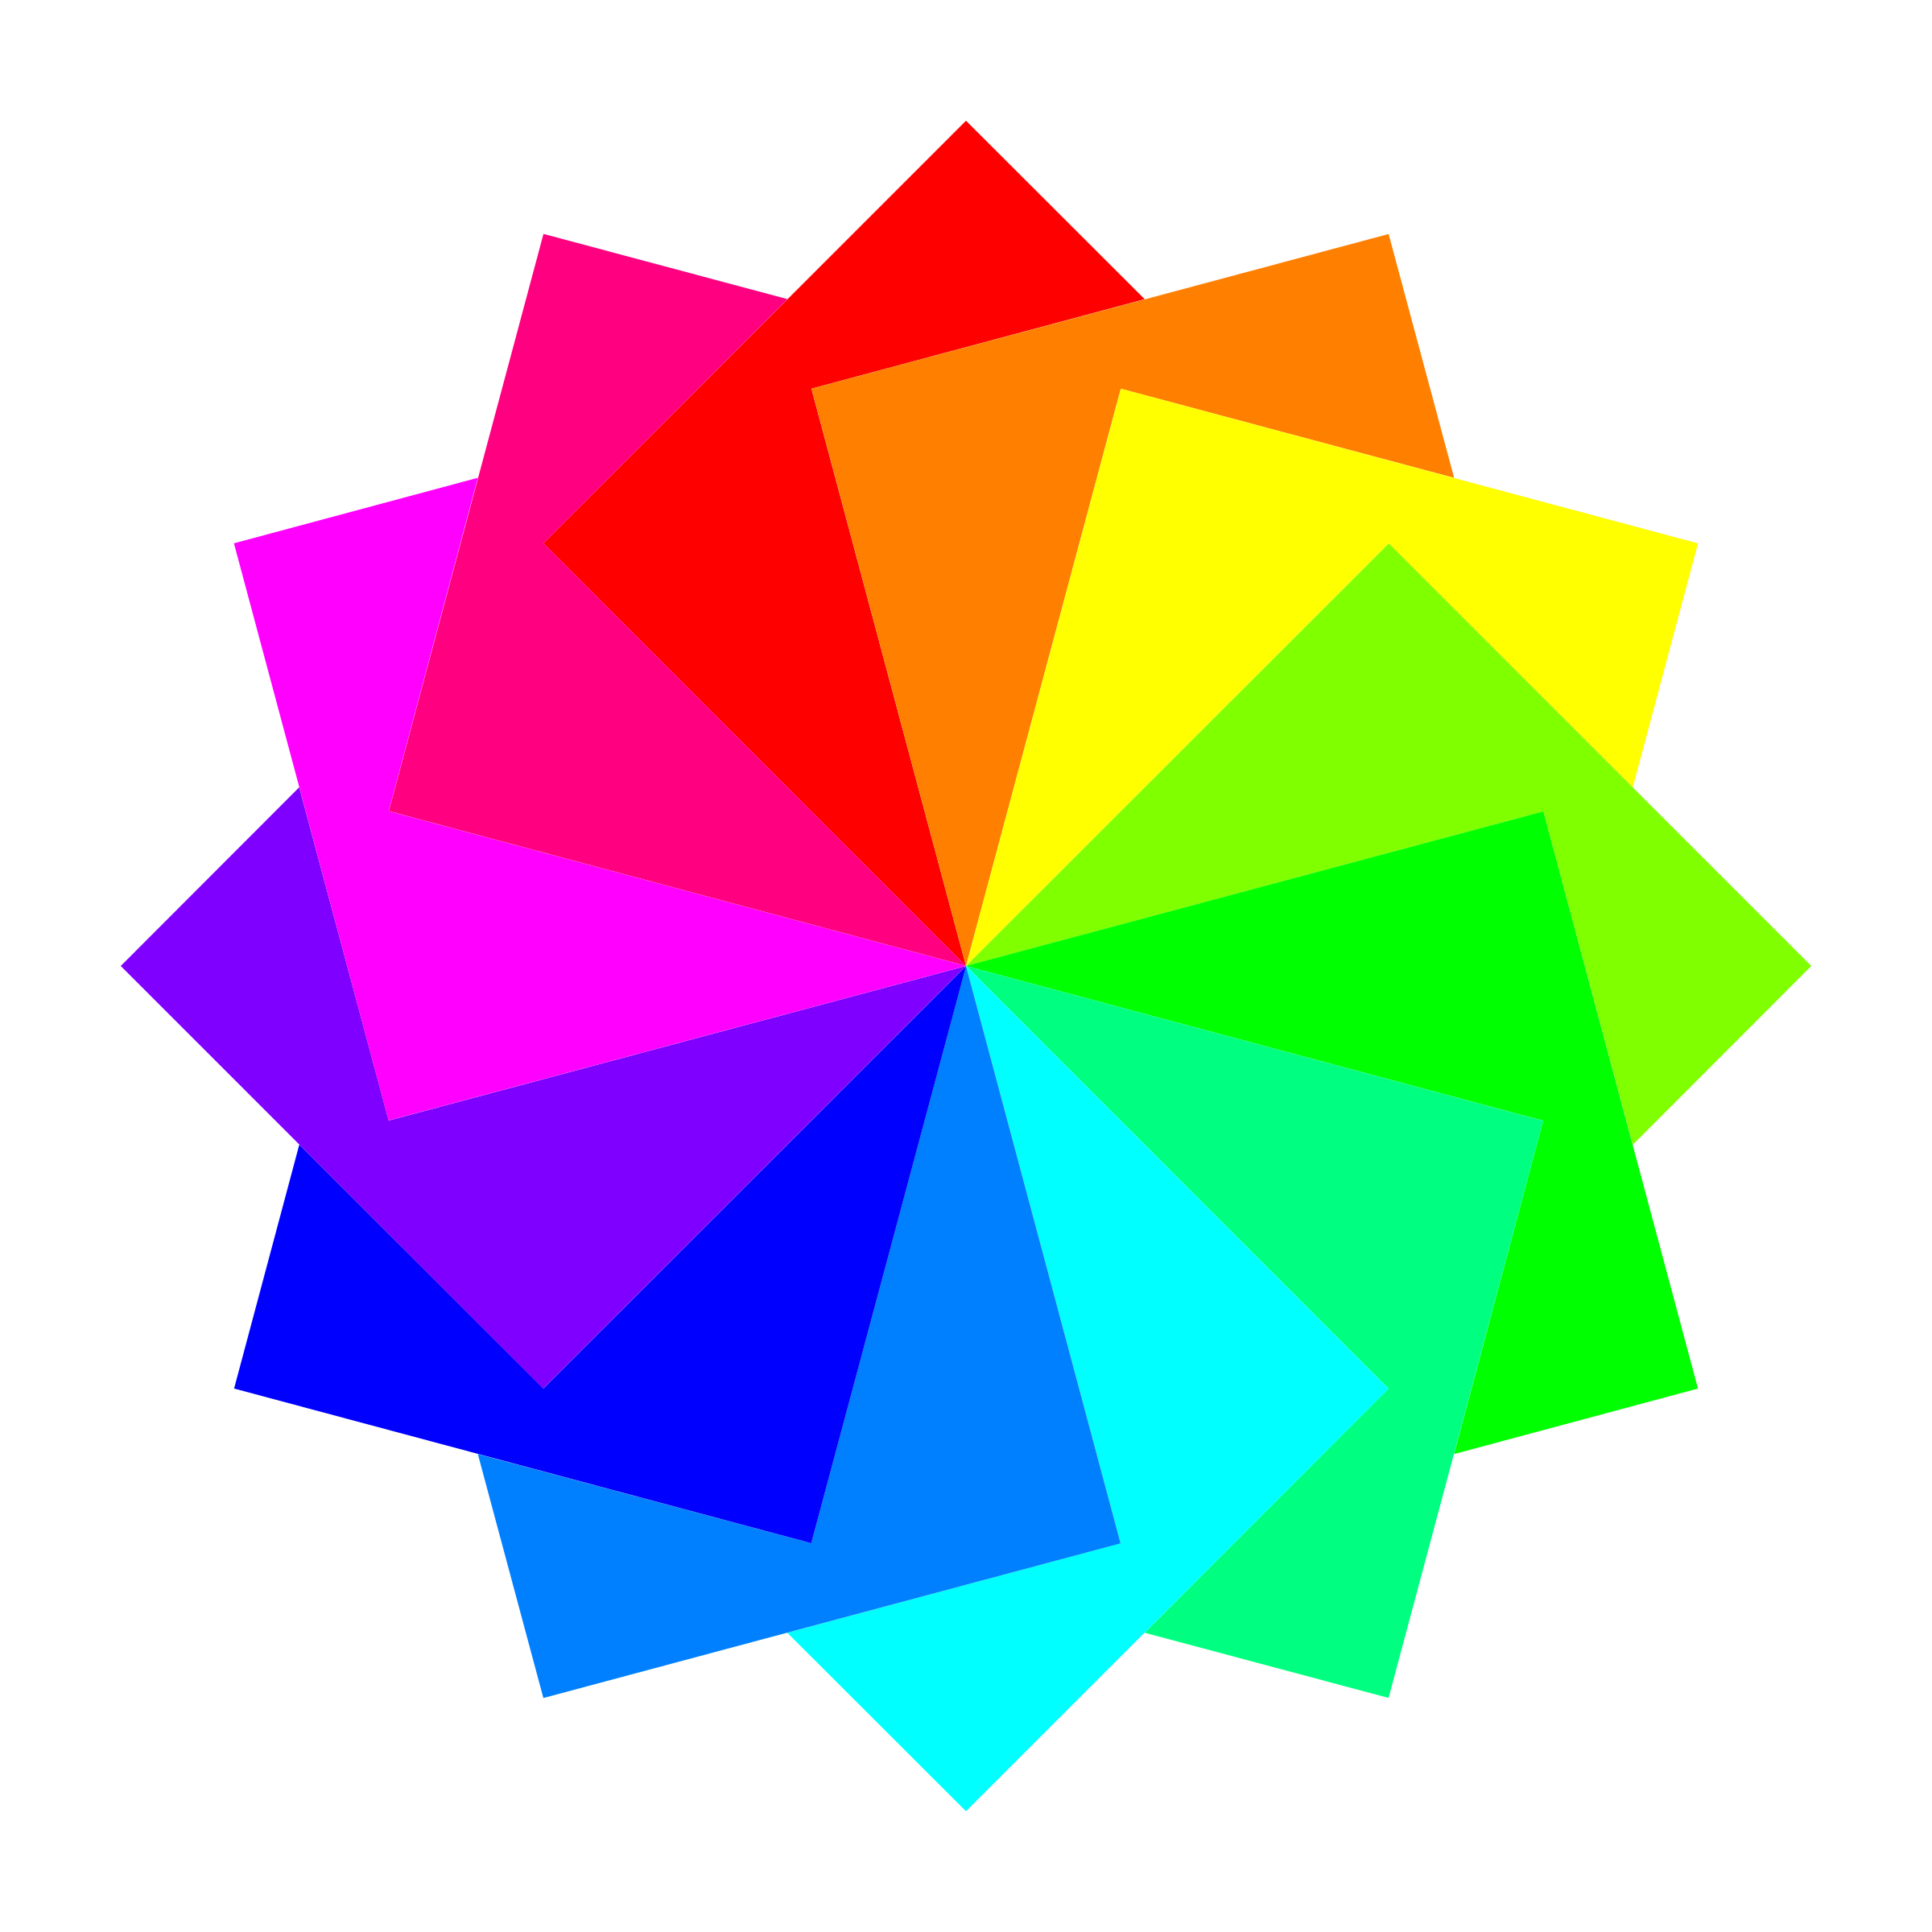 12 square dodecagram by 10binary